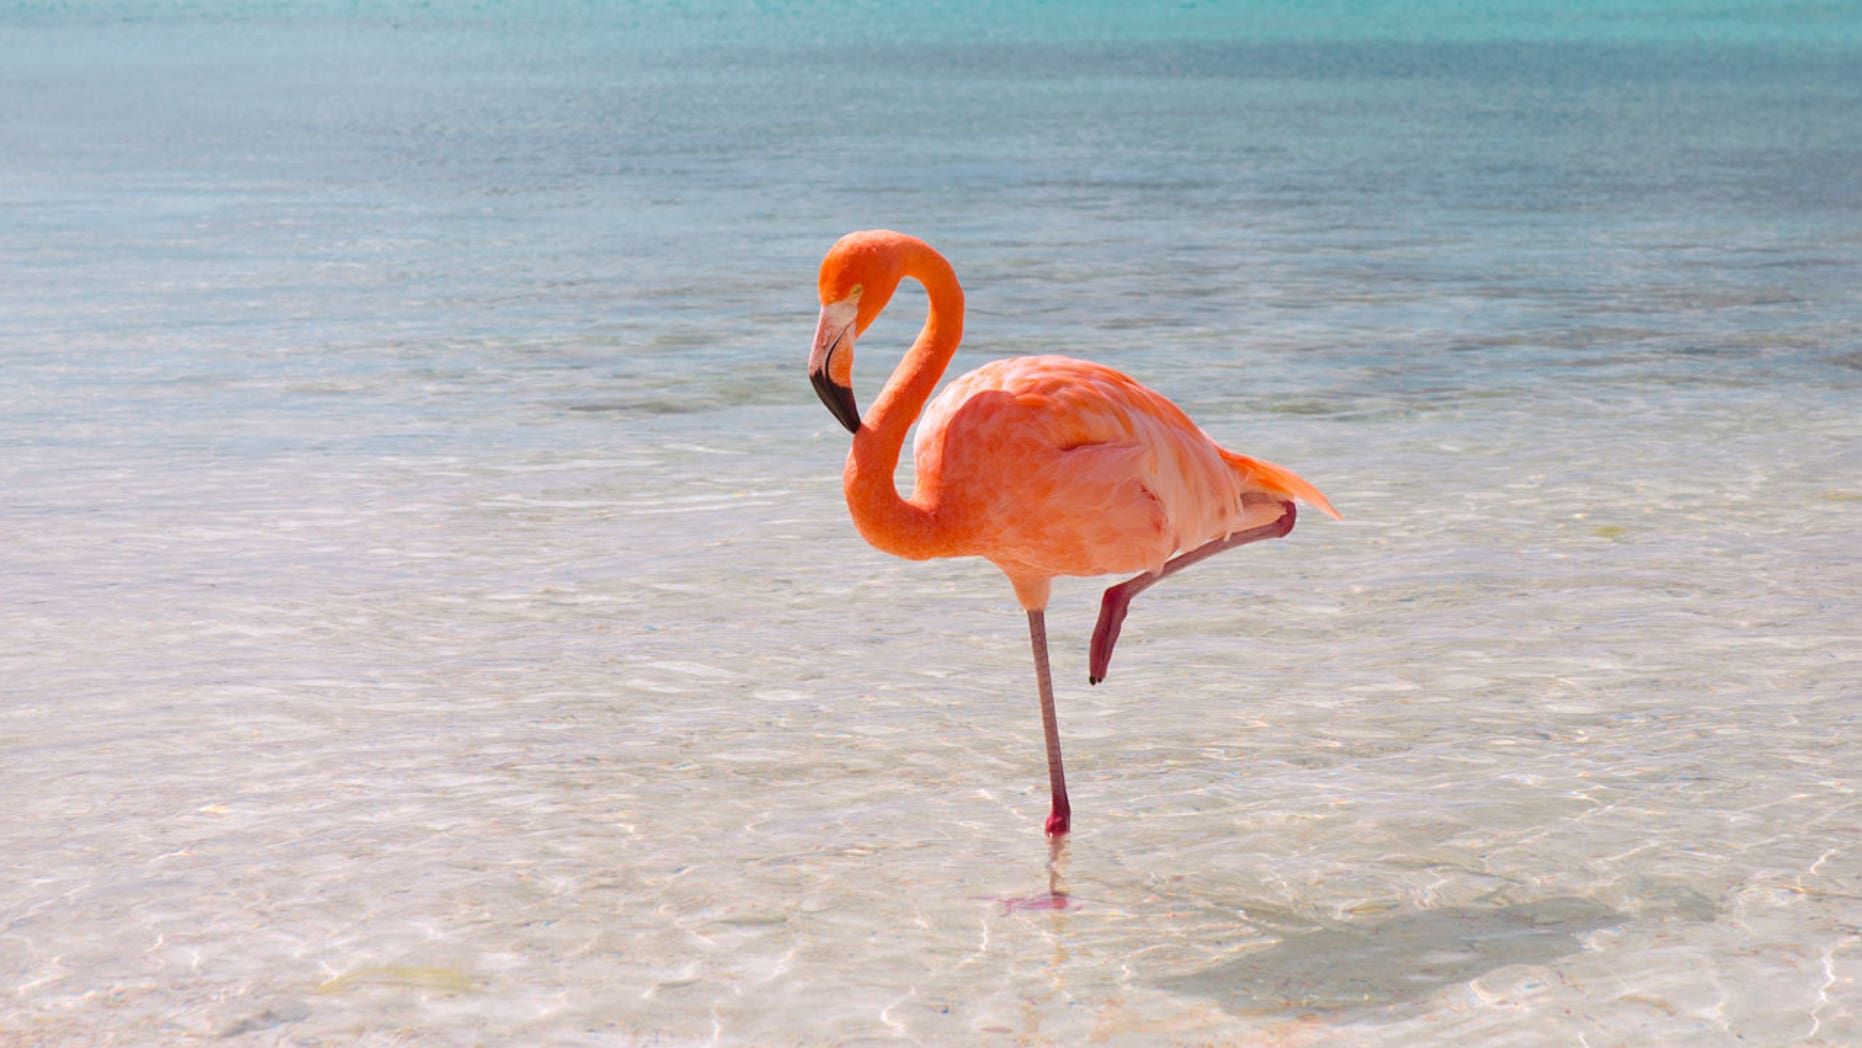 Tourists at one Caribbean resort say its flamingo population isn't there of their own volition.